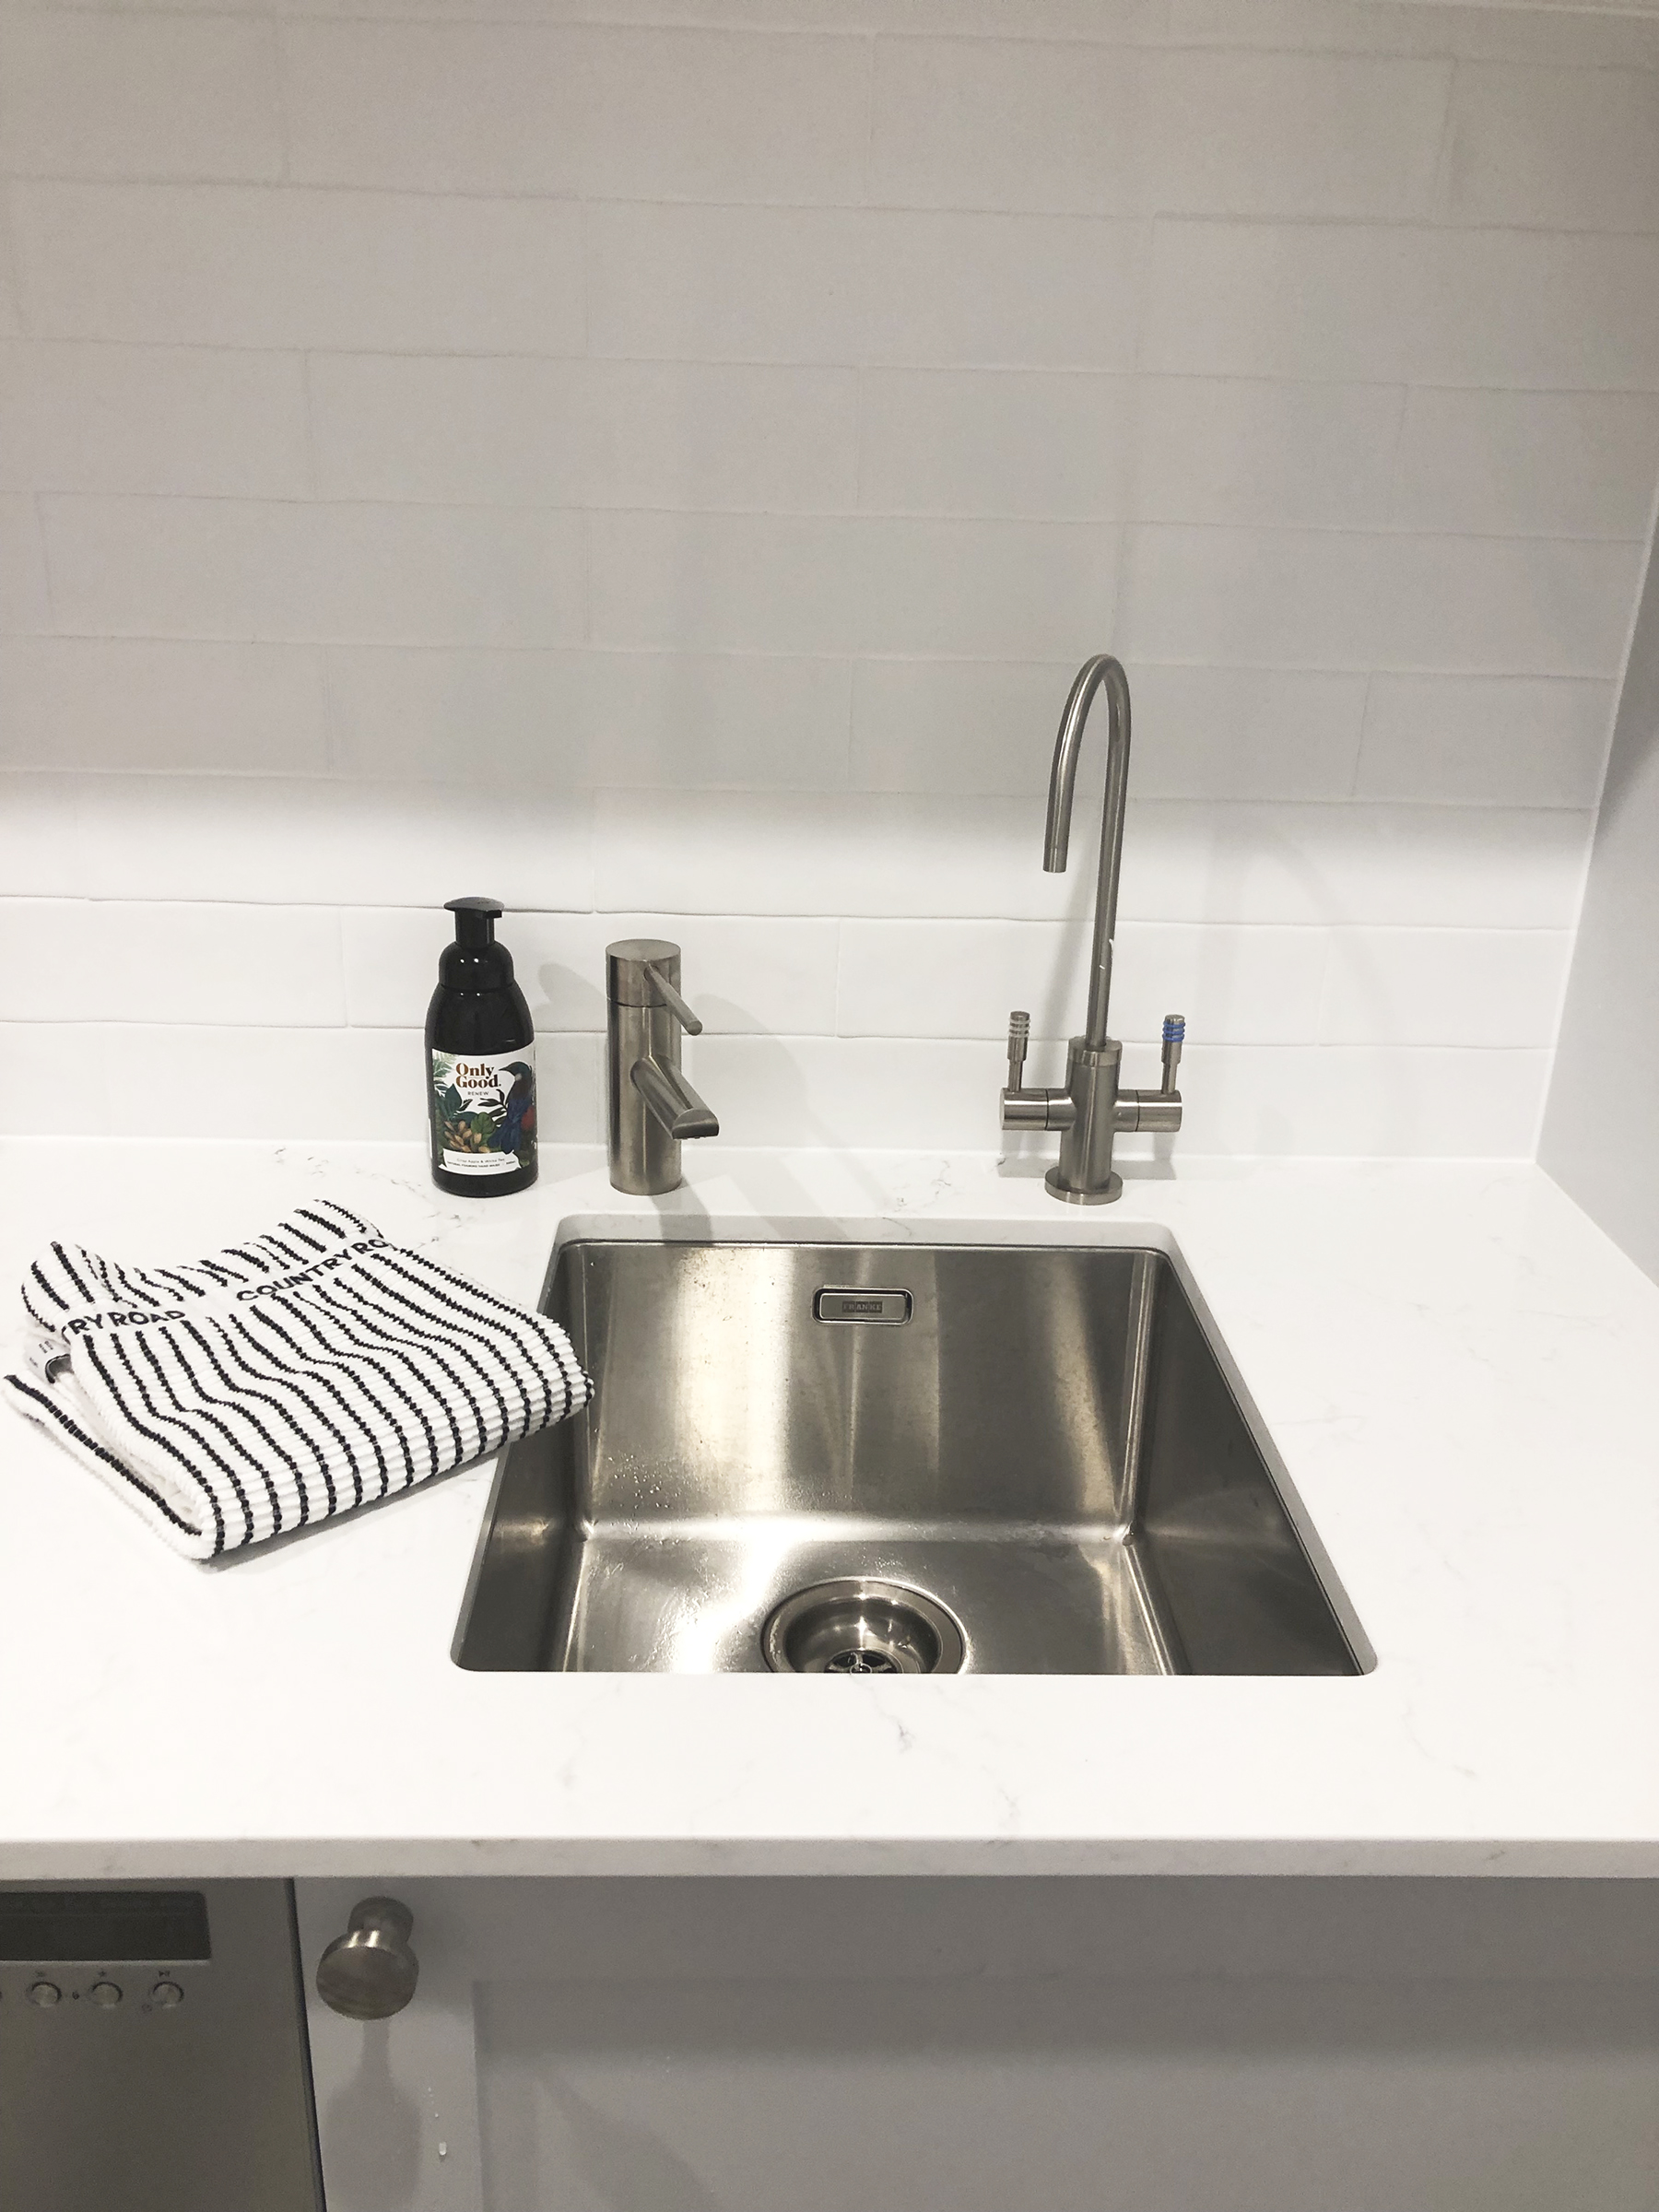 We chose to integrate our water tap into the butlers' pantry benchtop, to keep the kitchen benchtop clutter-free.